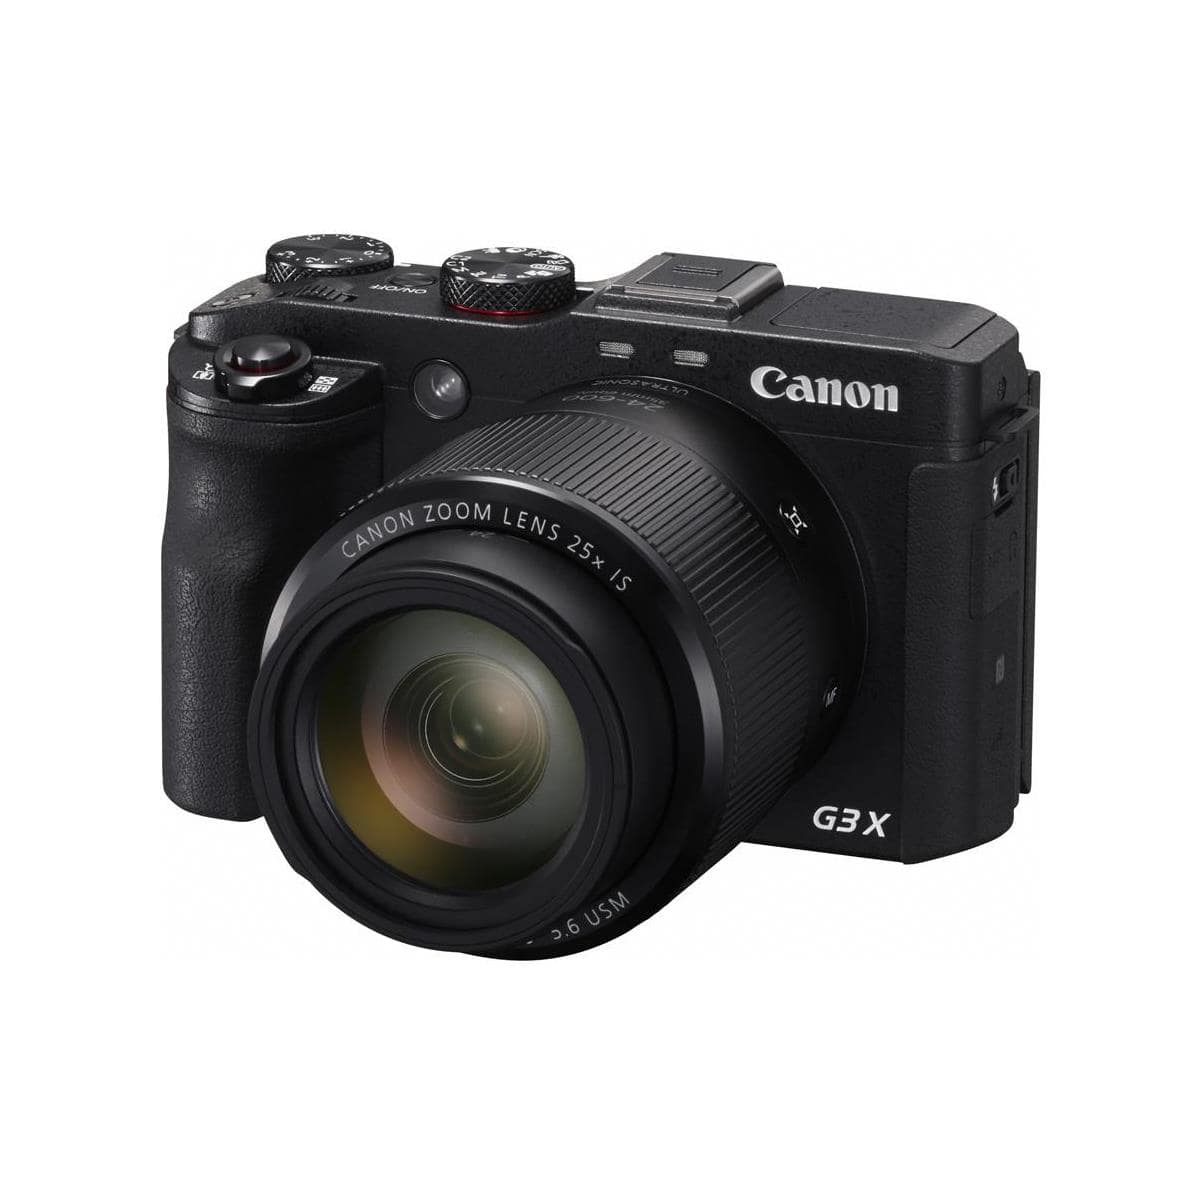 Canon G3 X Camera + Pro-100 Printer + EVF-DC1 Electronic Viewfinder + 1TB Connect Station CS100 & More $850 after $350 MIR